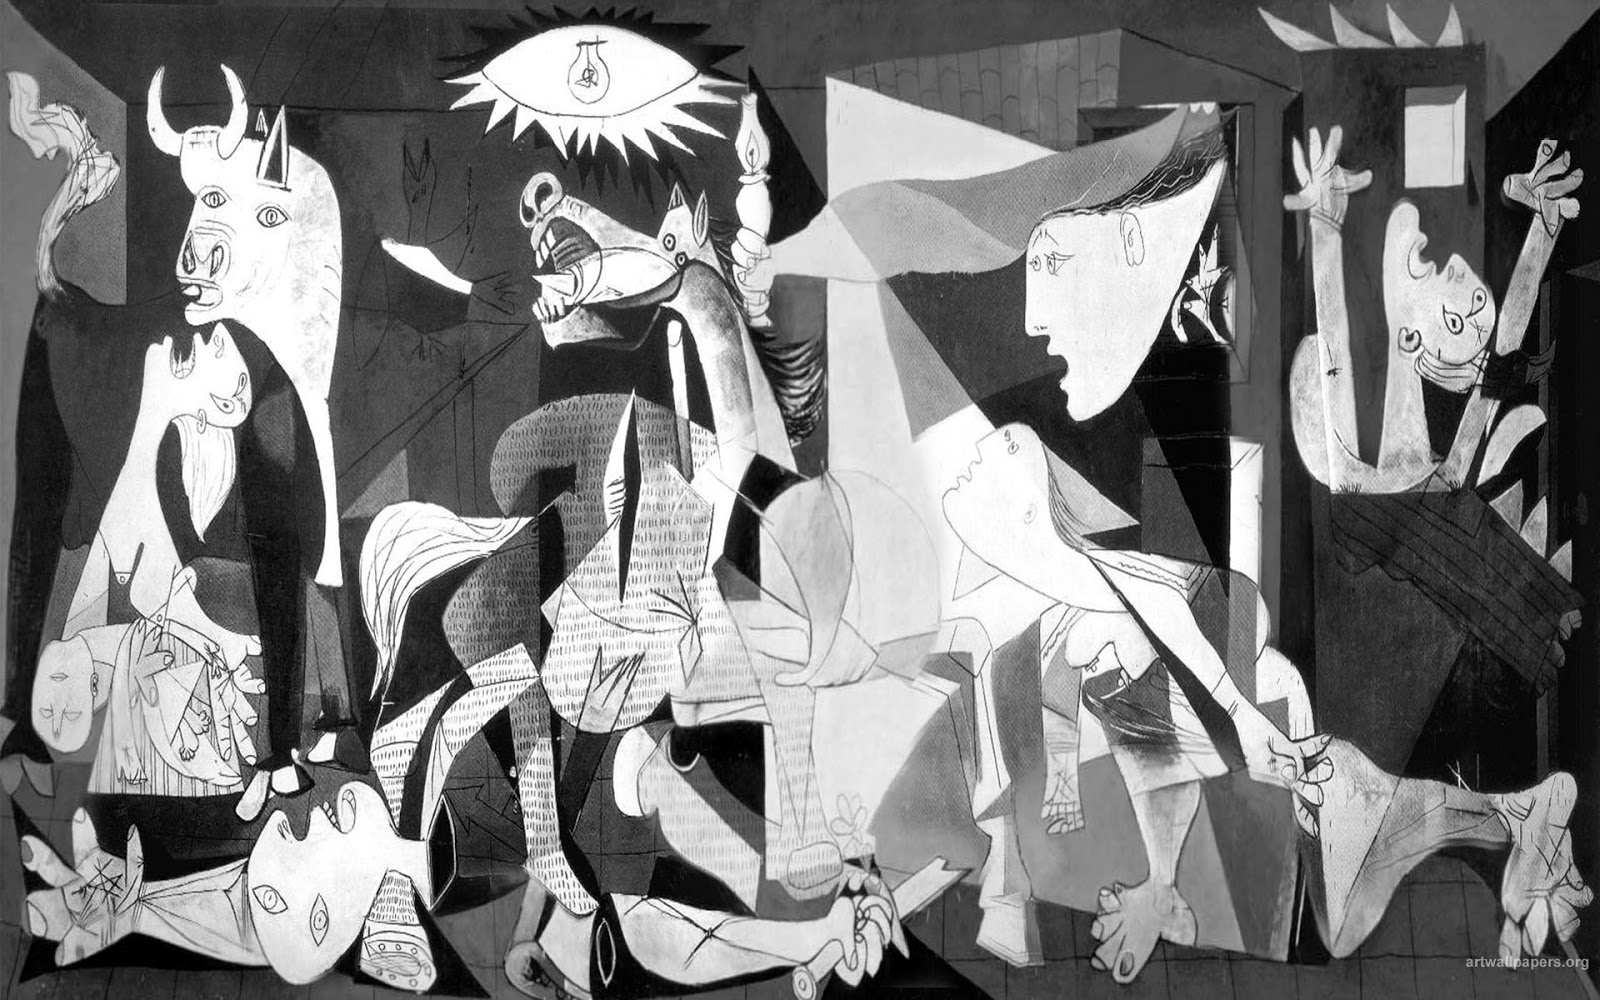 The understanding of the meaning and symbols of the painting Guernica by Pablo Picasso Essay